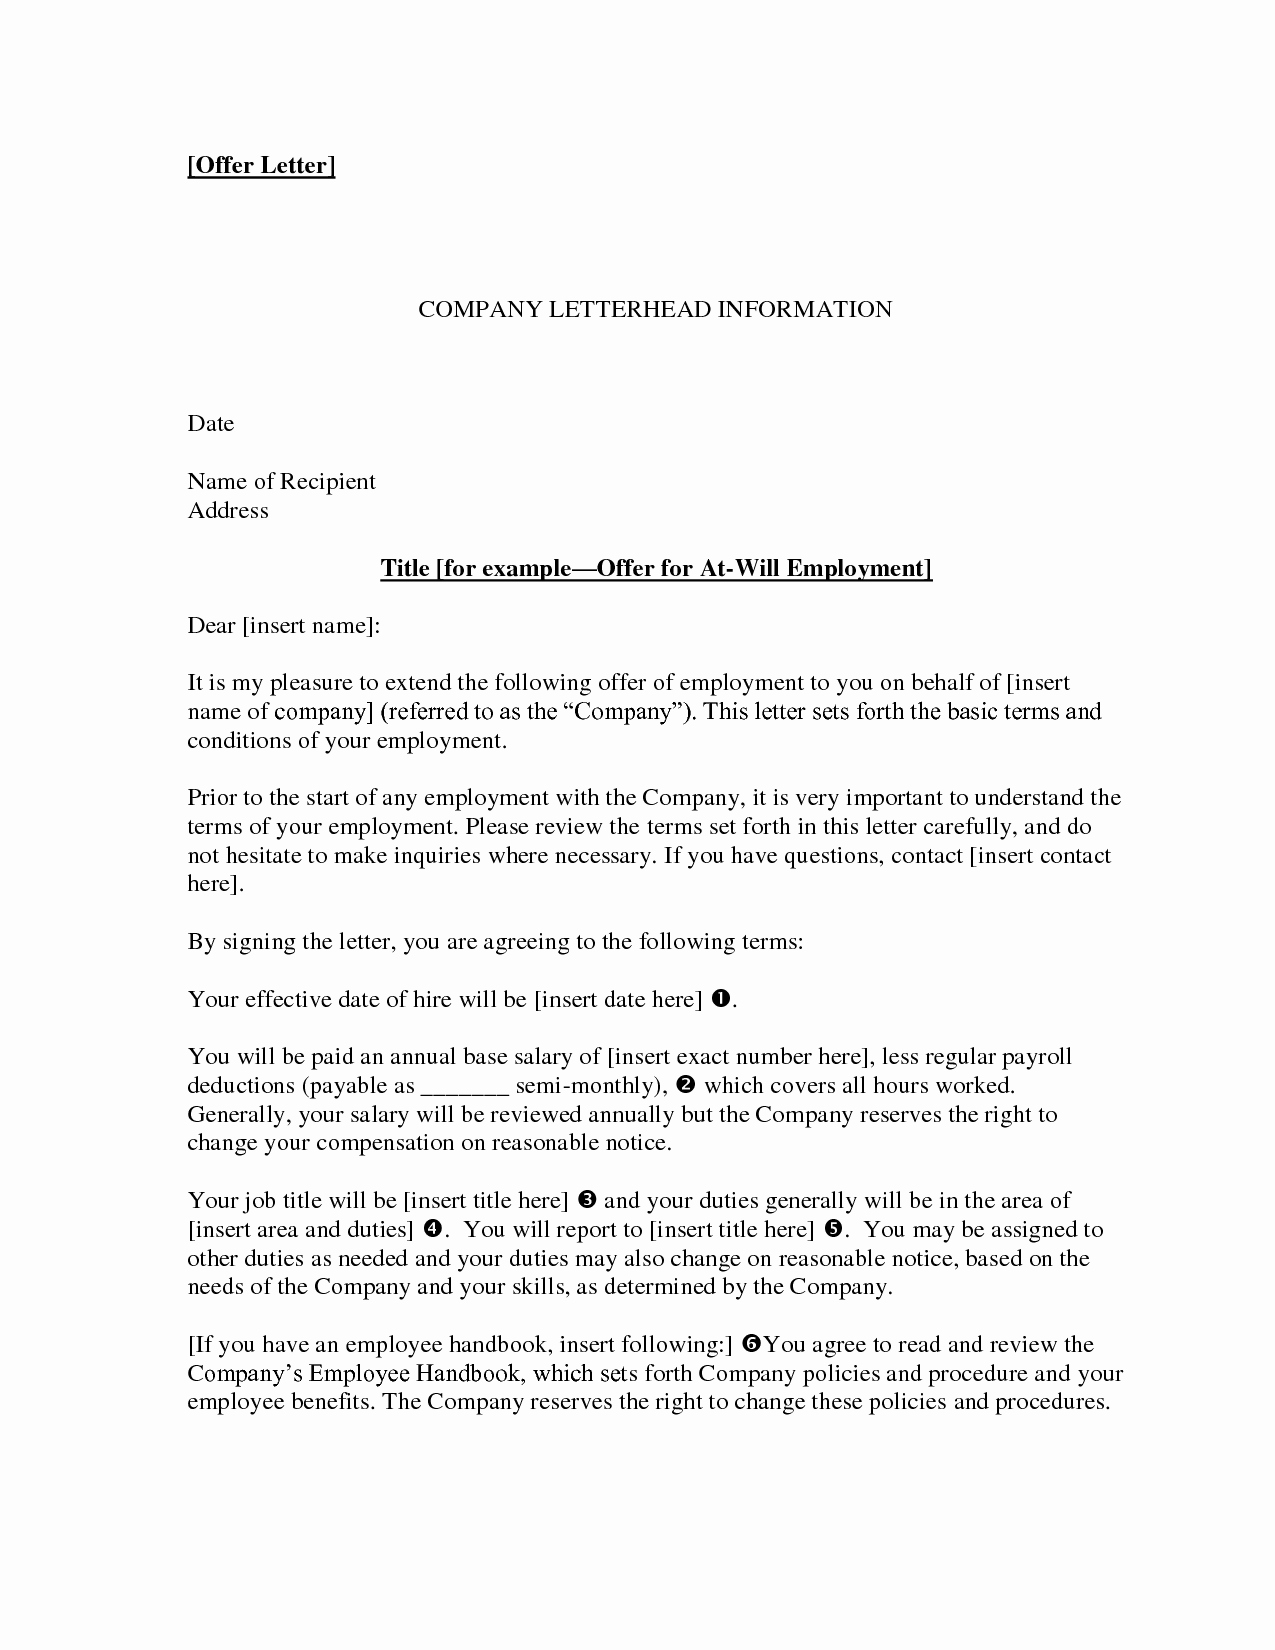 letter of employment offer 4014